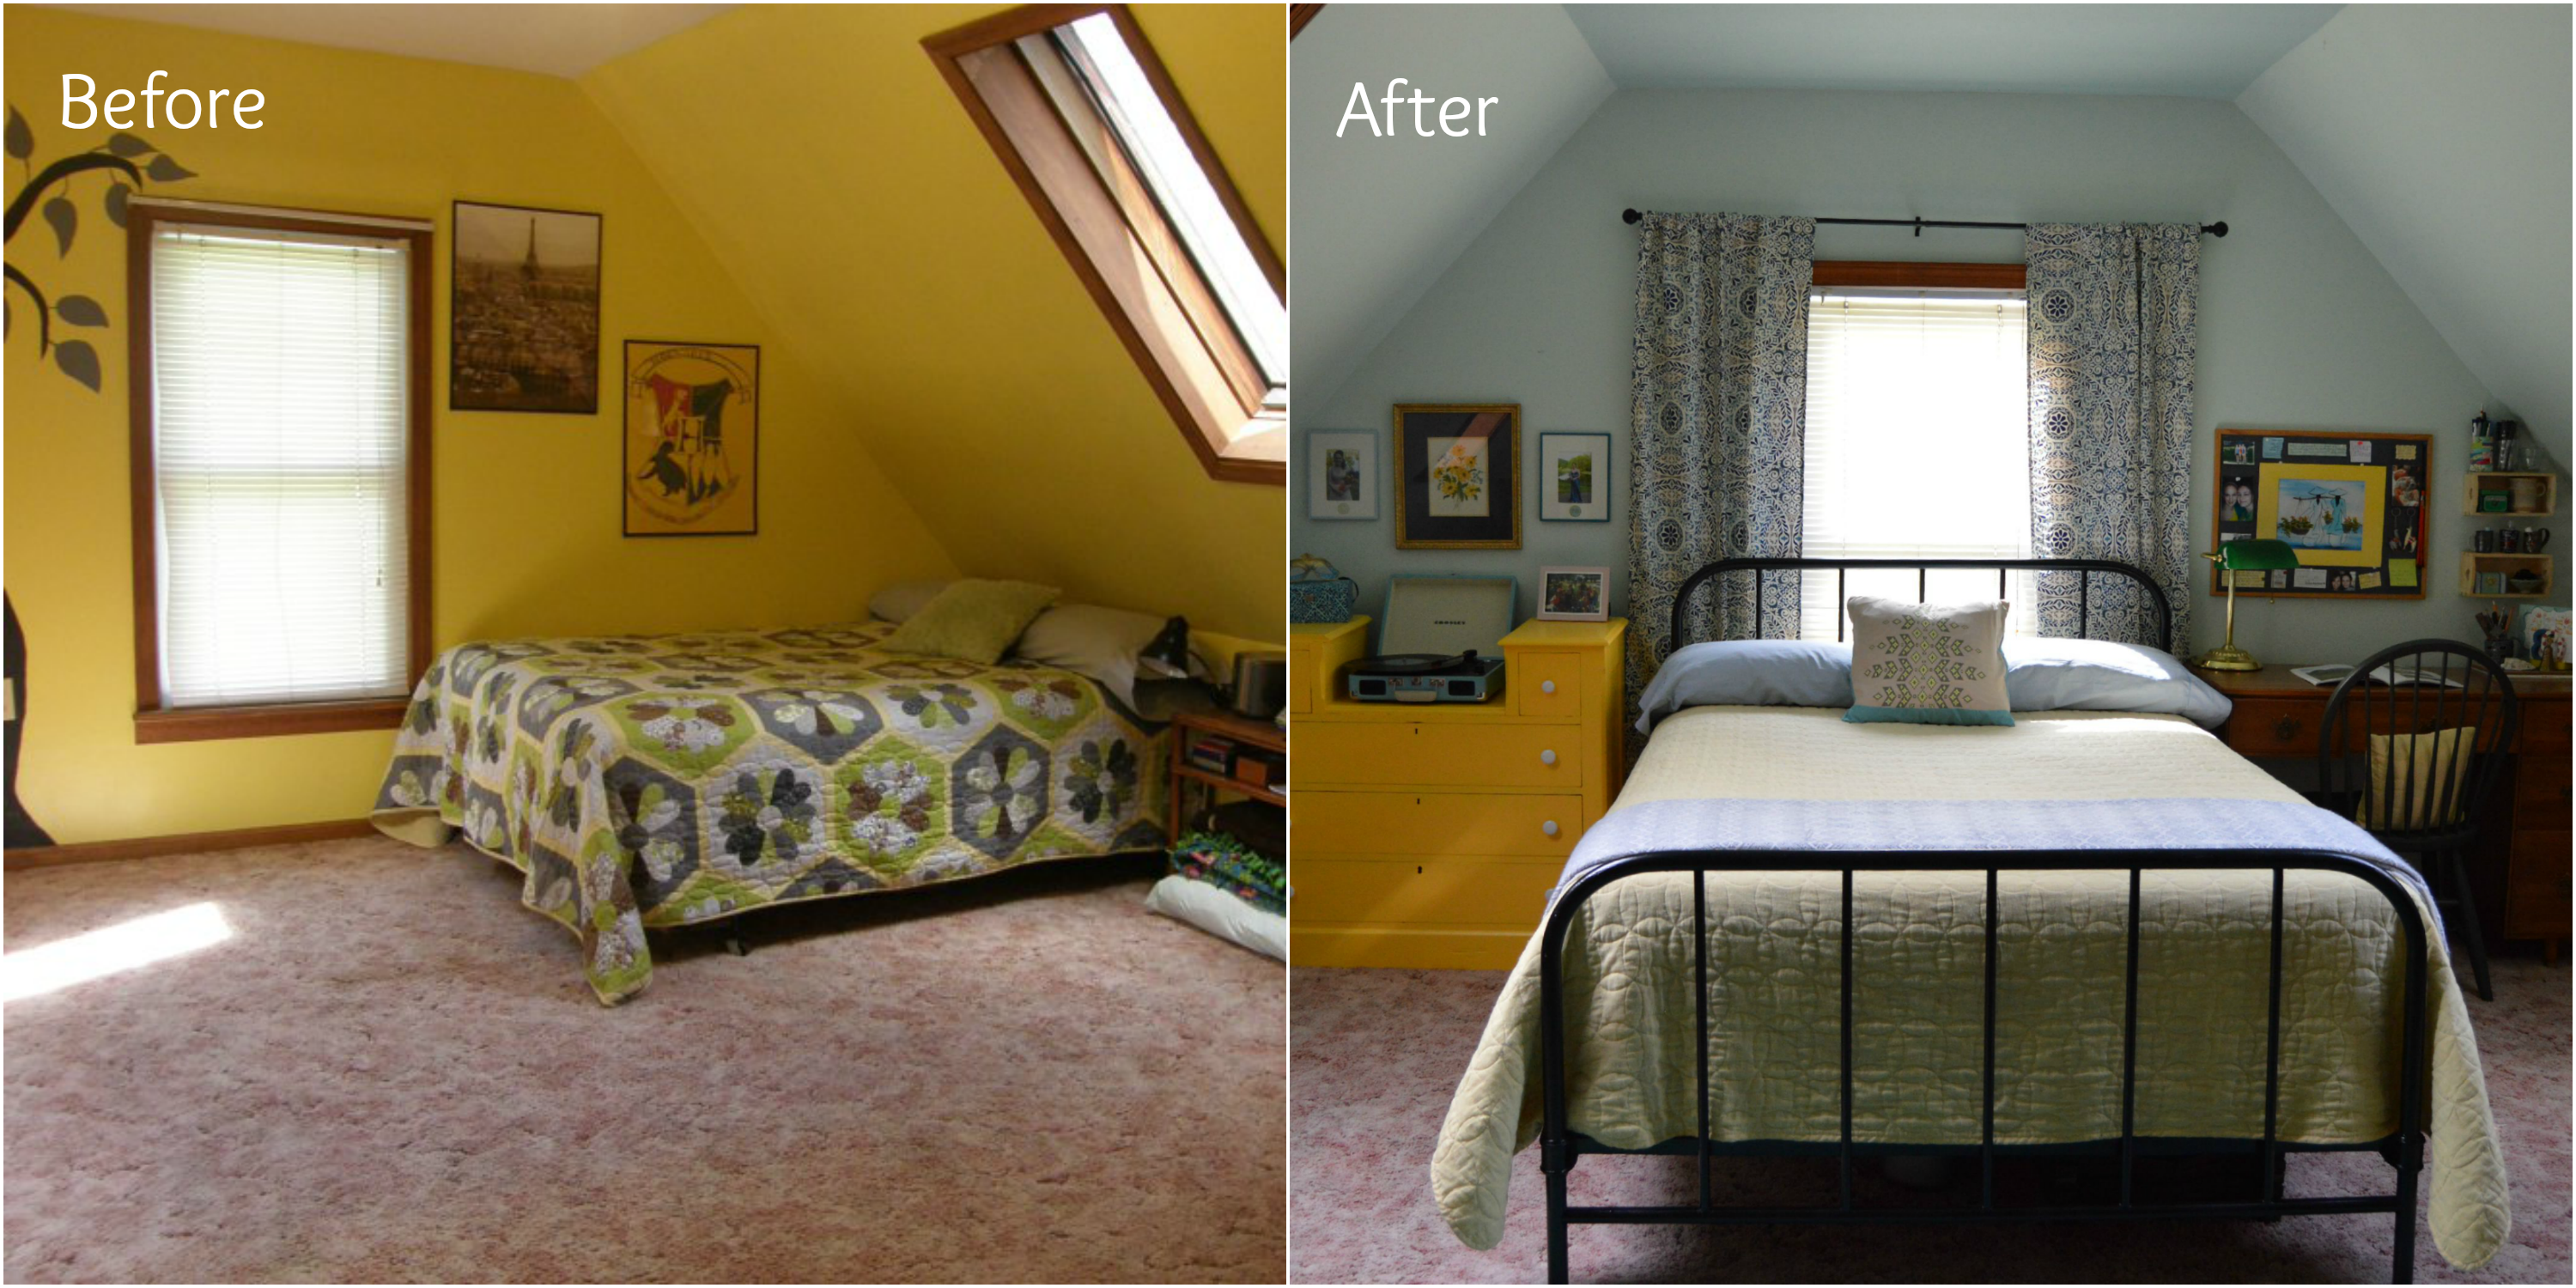 Interior decorating before and after photos - Bedroom Before And After